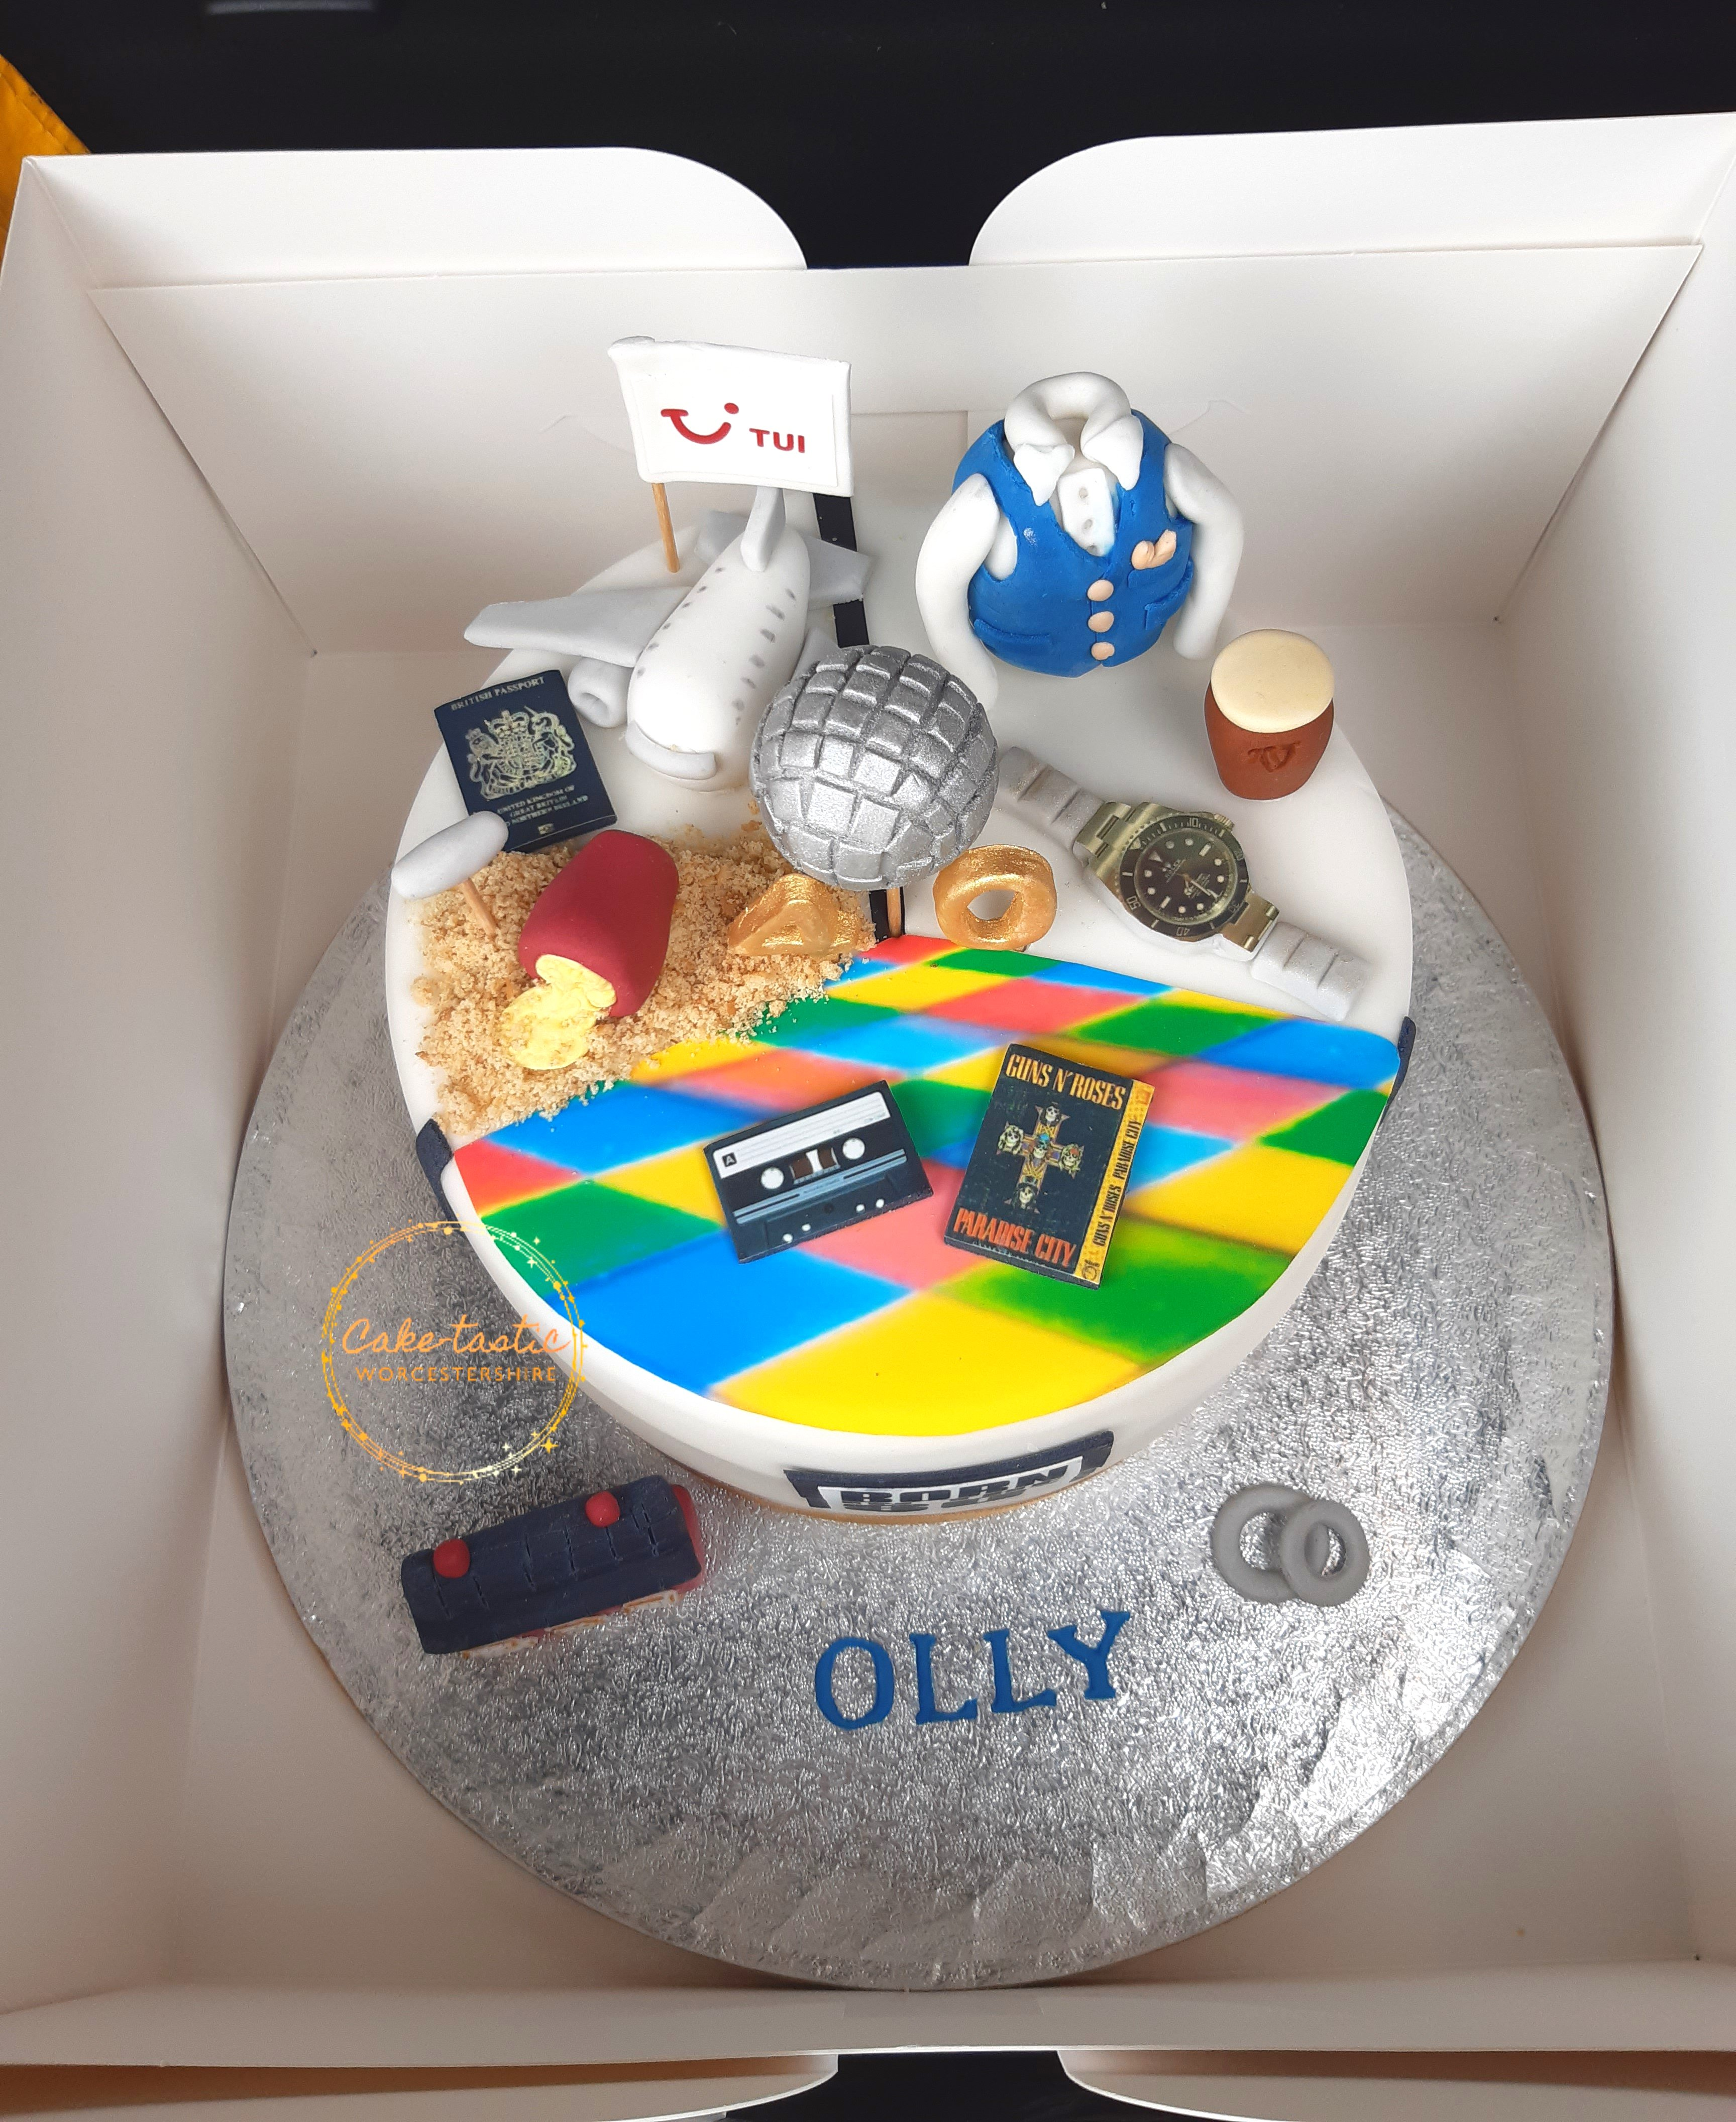 40th Birthday Cake - My Life in Cake